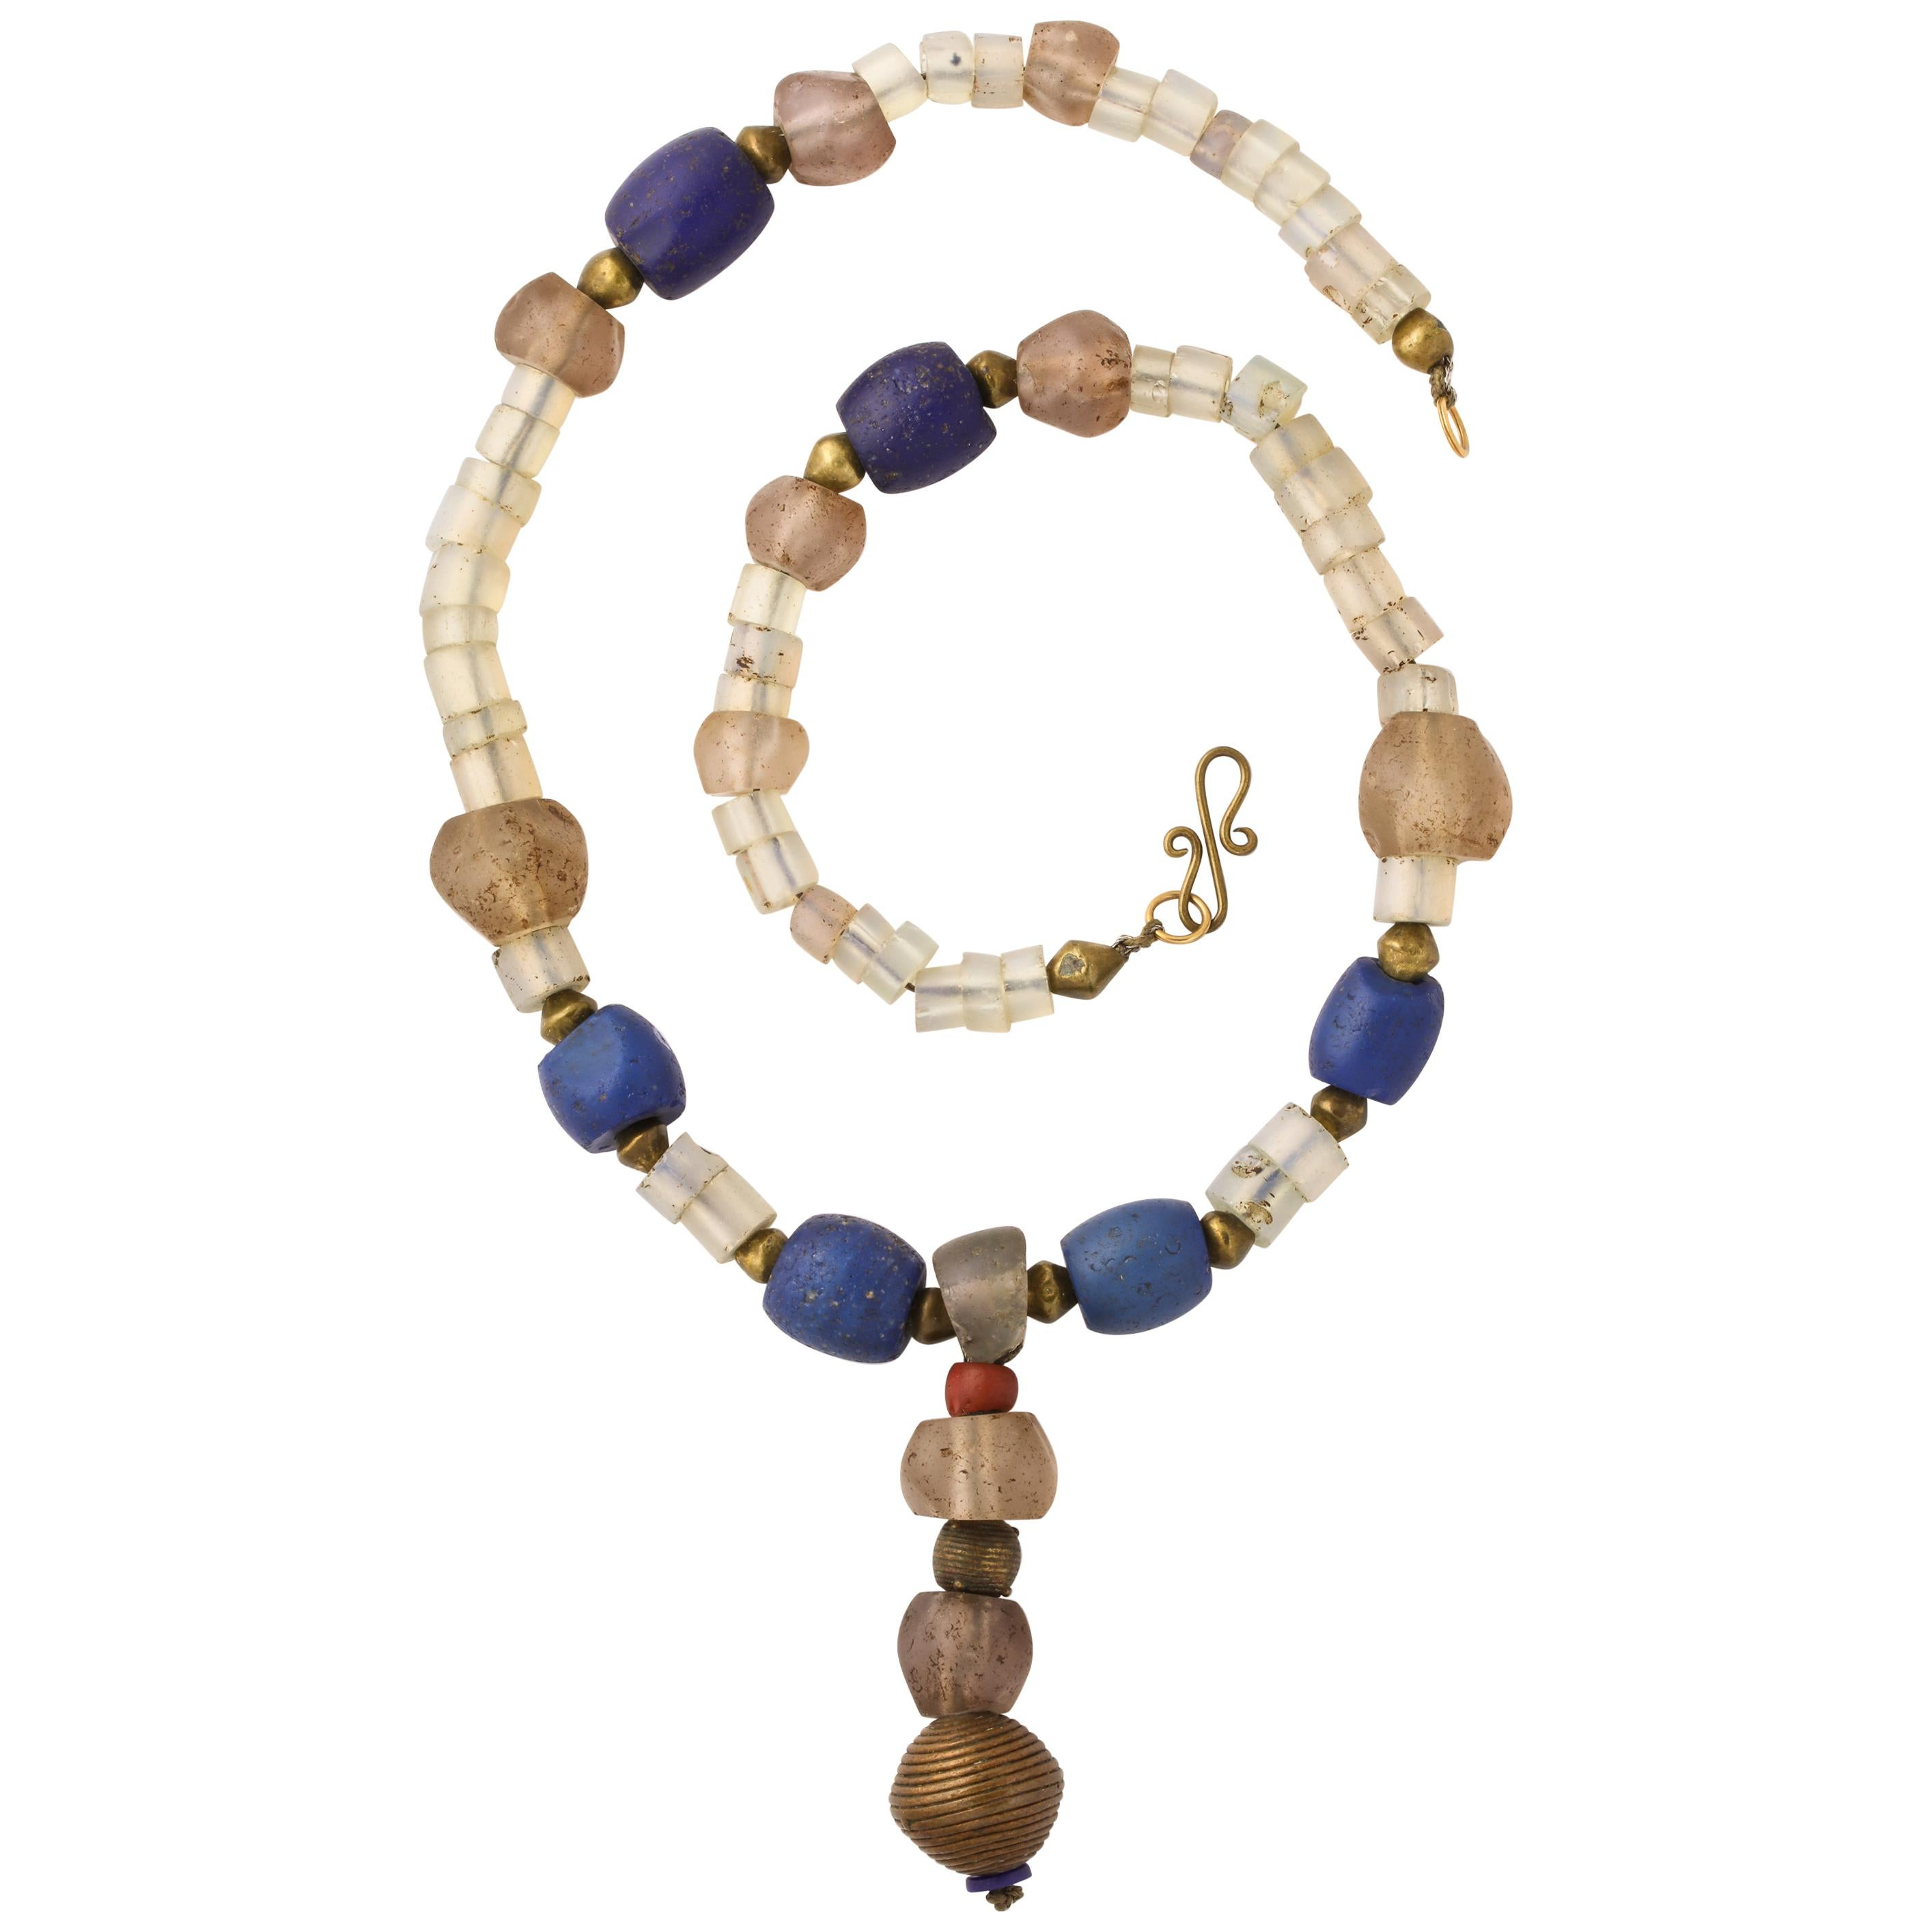 Antique African Silver and Brass Bead Necklace